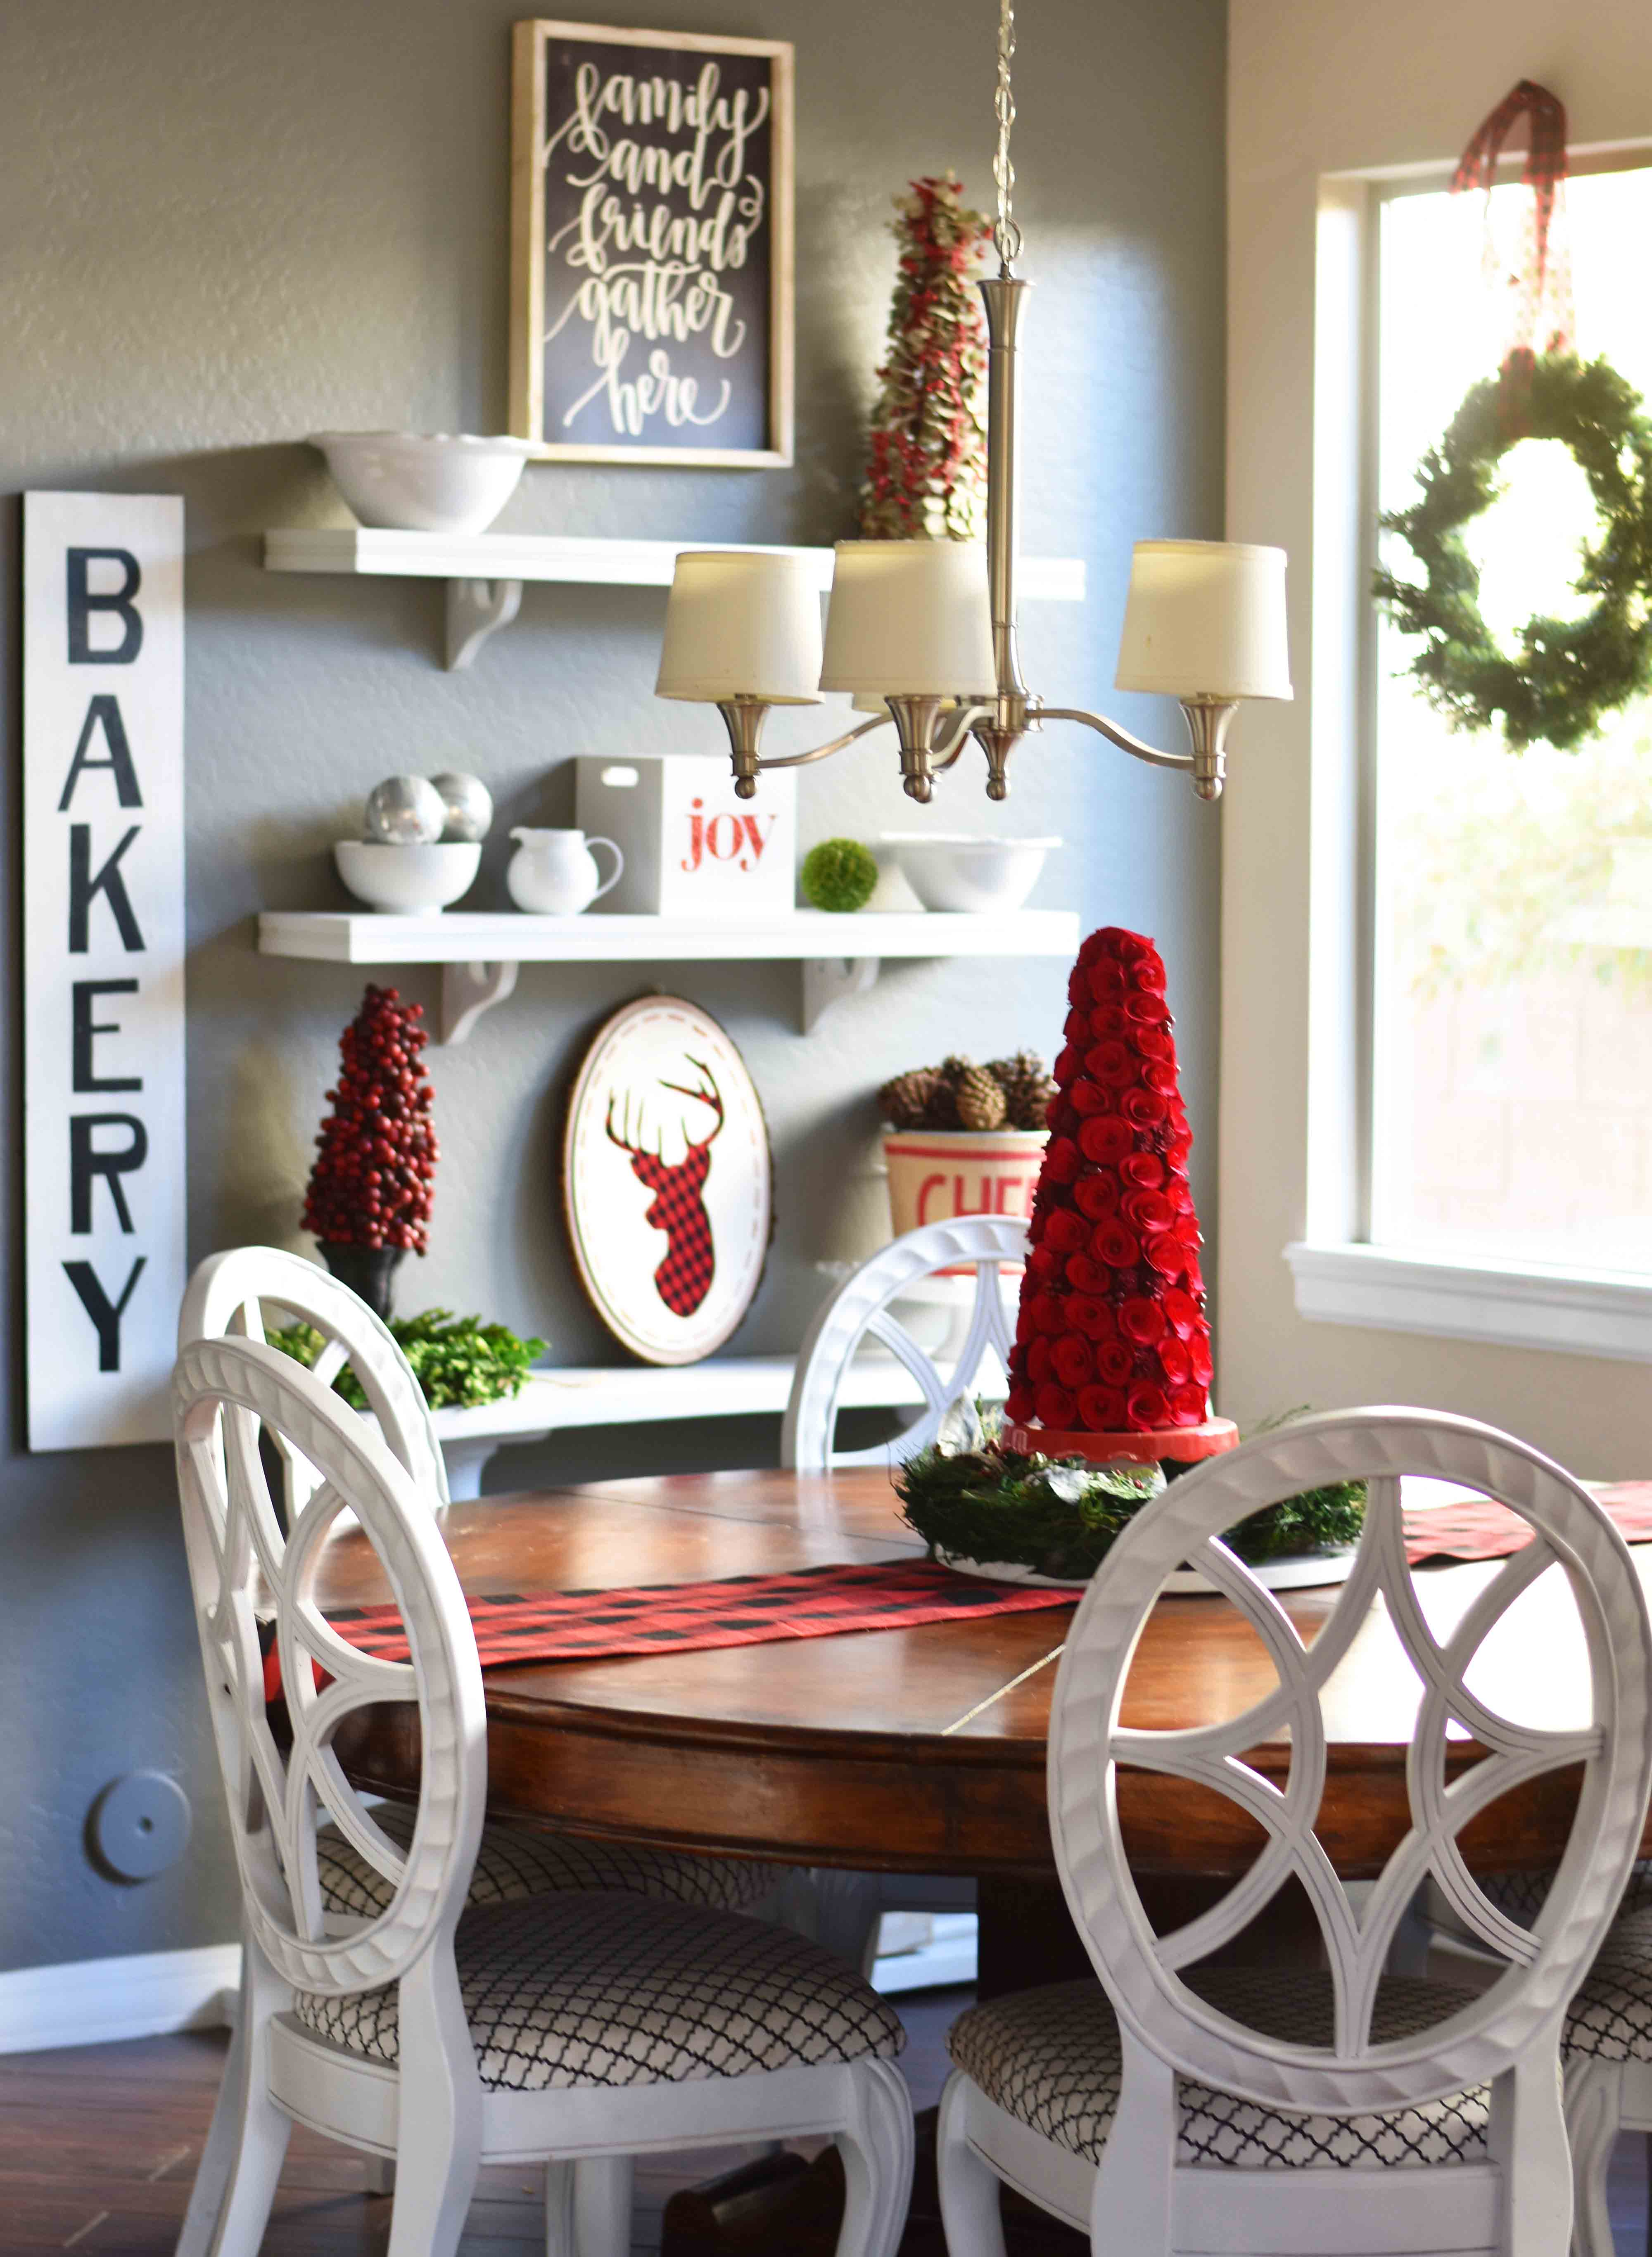 Christmas Decor Ideas. Farmhouse Christmas decorating ideas. Buffalo Plaid Christmas, Red Christmas Topiary, Natural Green Wreaths. A Magnoila House Christmas. www.modernhoney.com